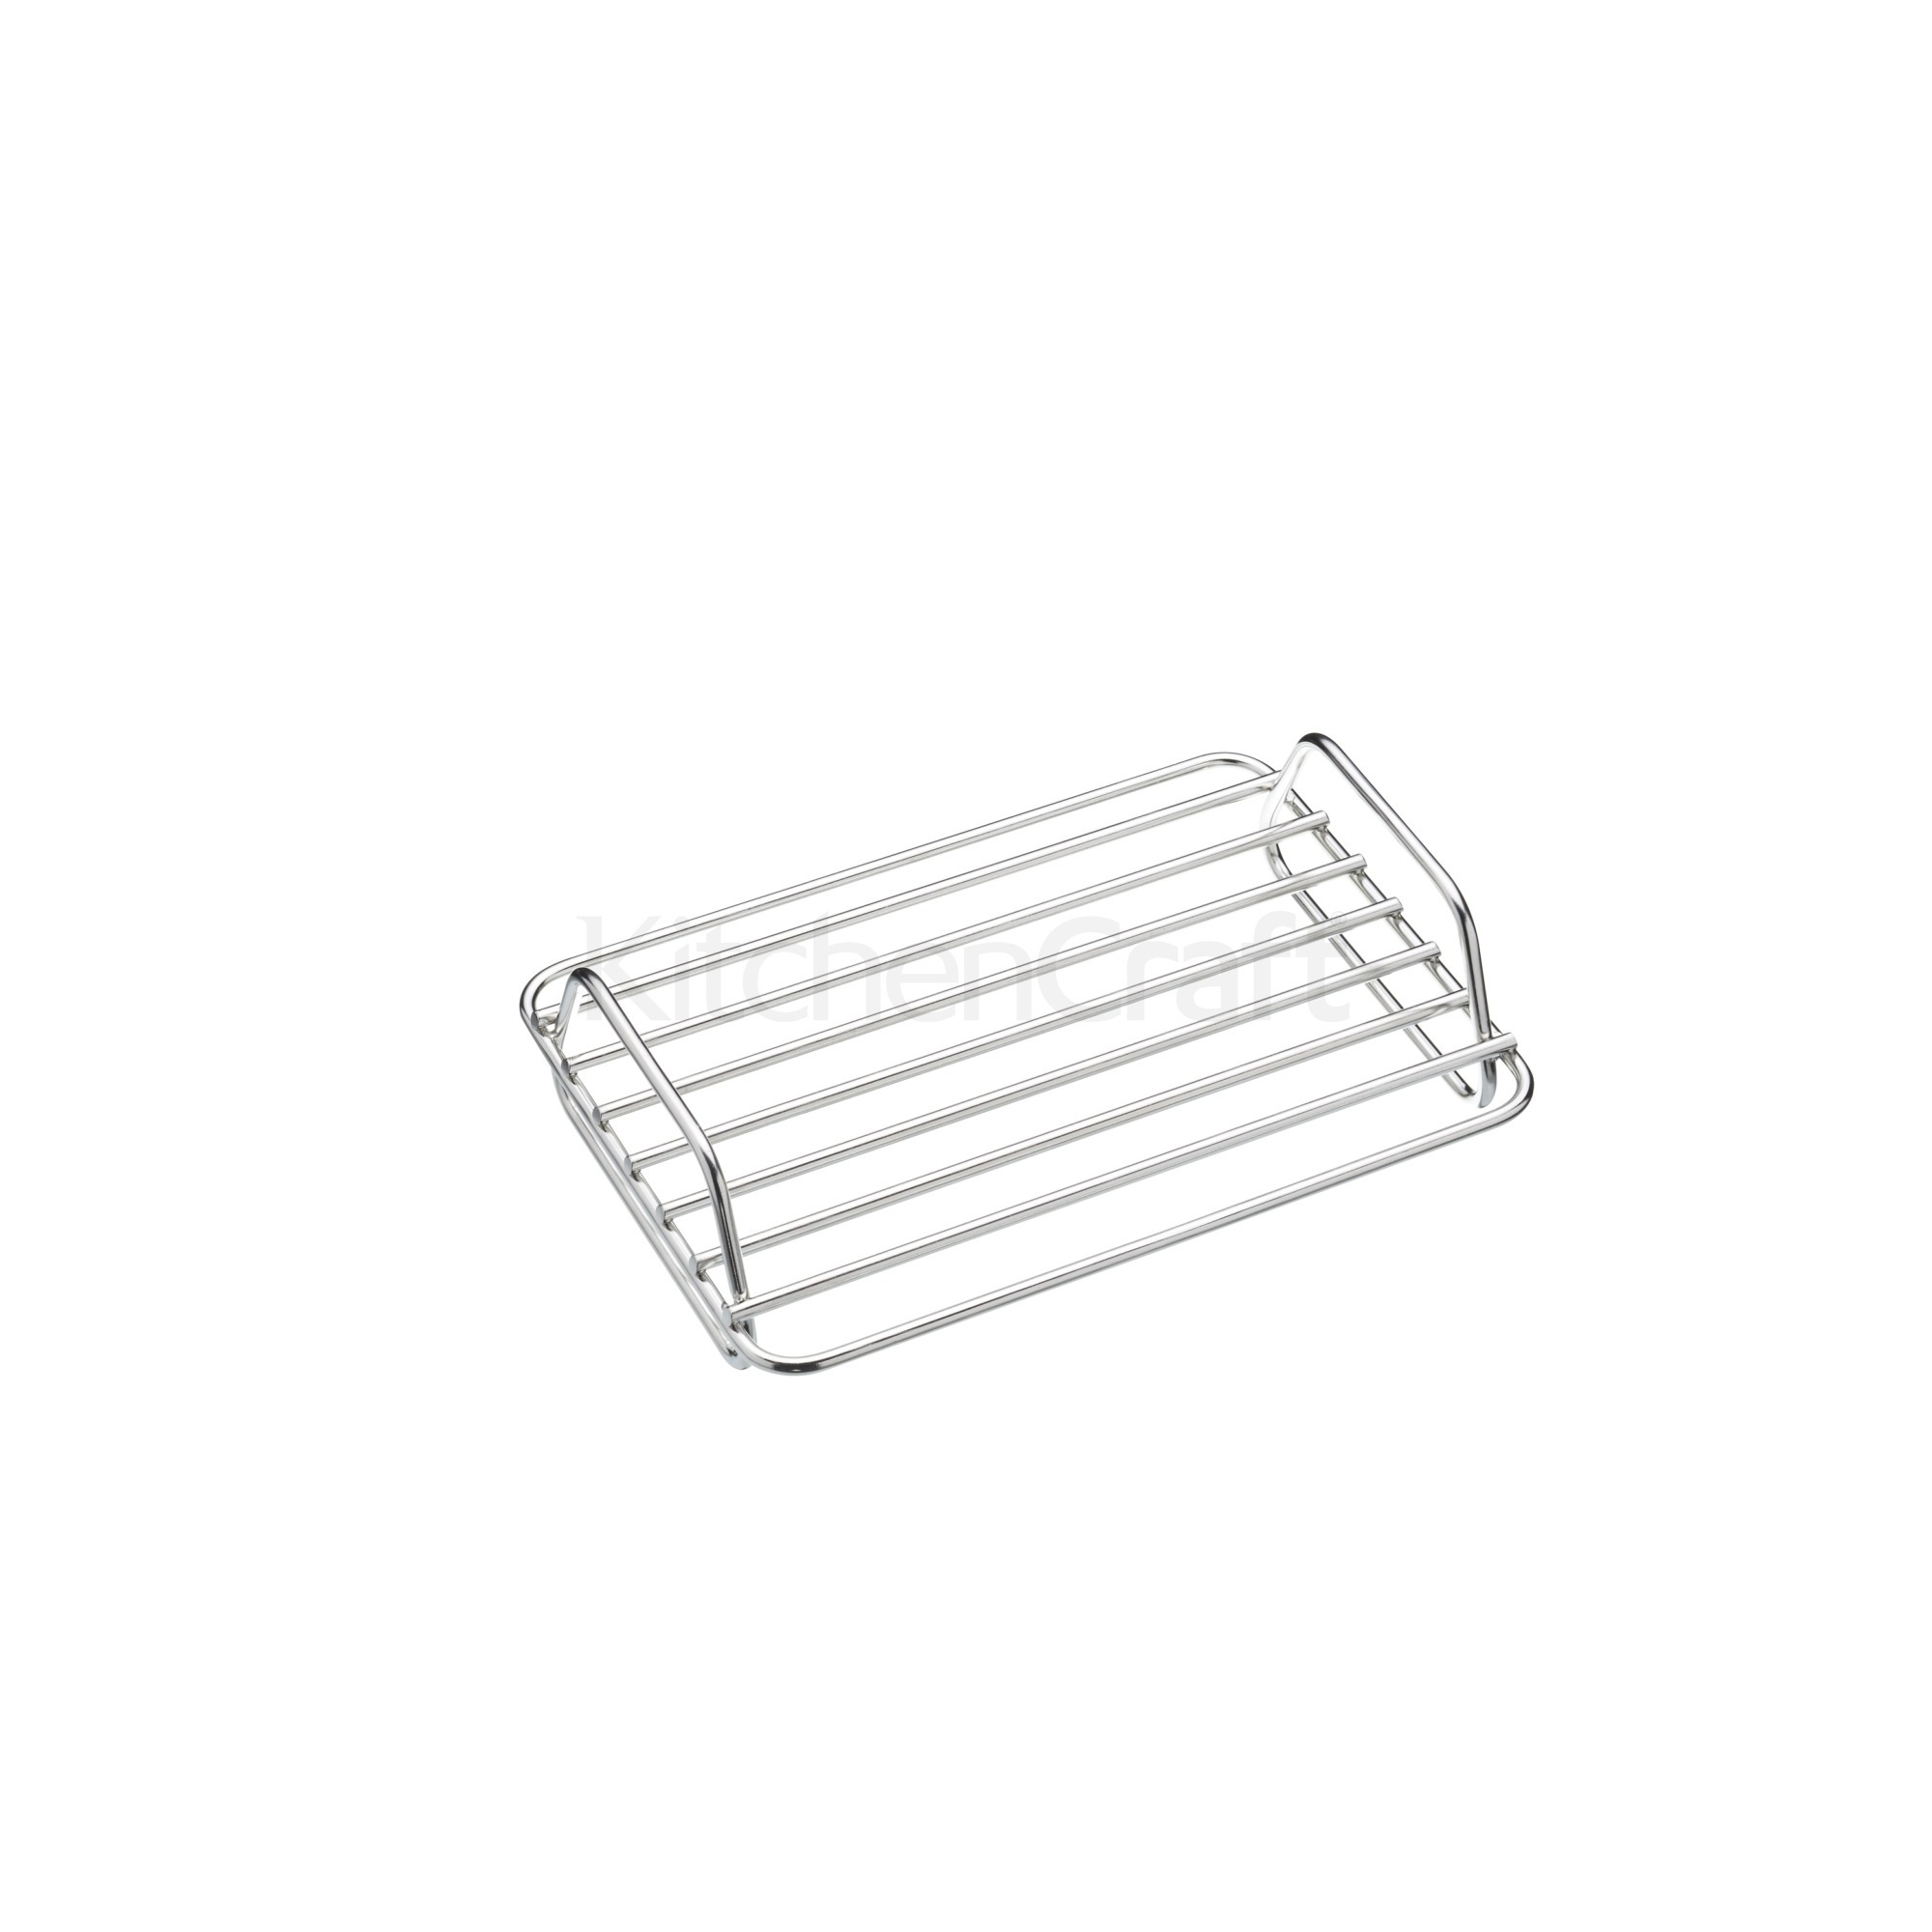 Small Baking Rack Cosmecol